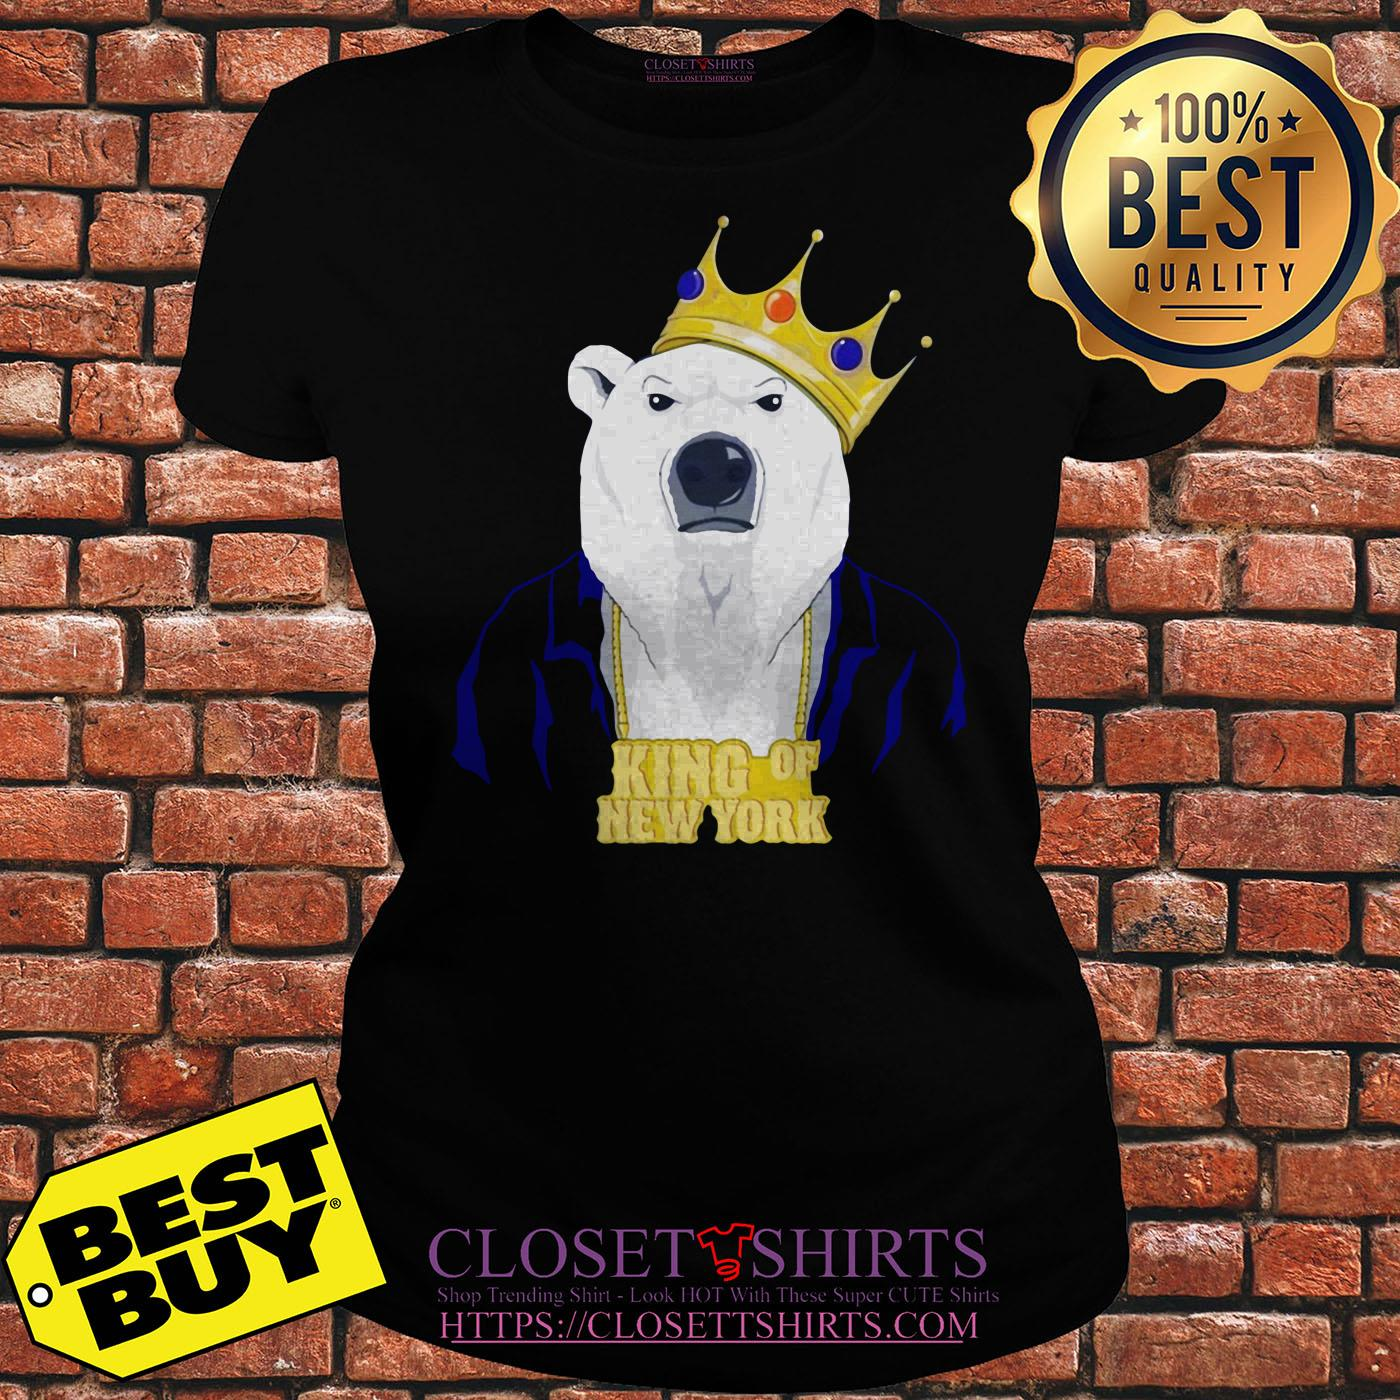 King Of New York Pete Alonso Polar Bear New York Mets ladies tee